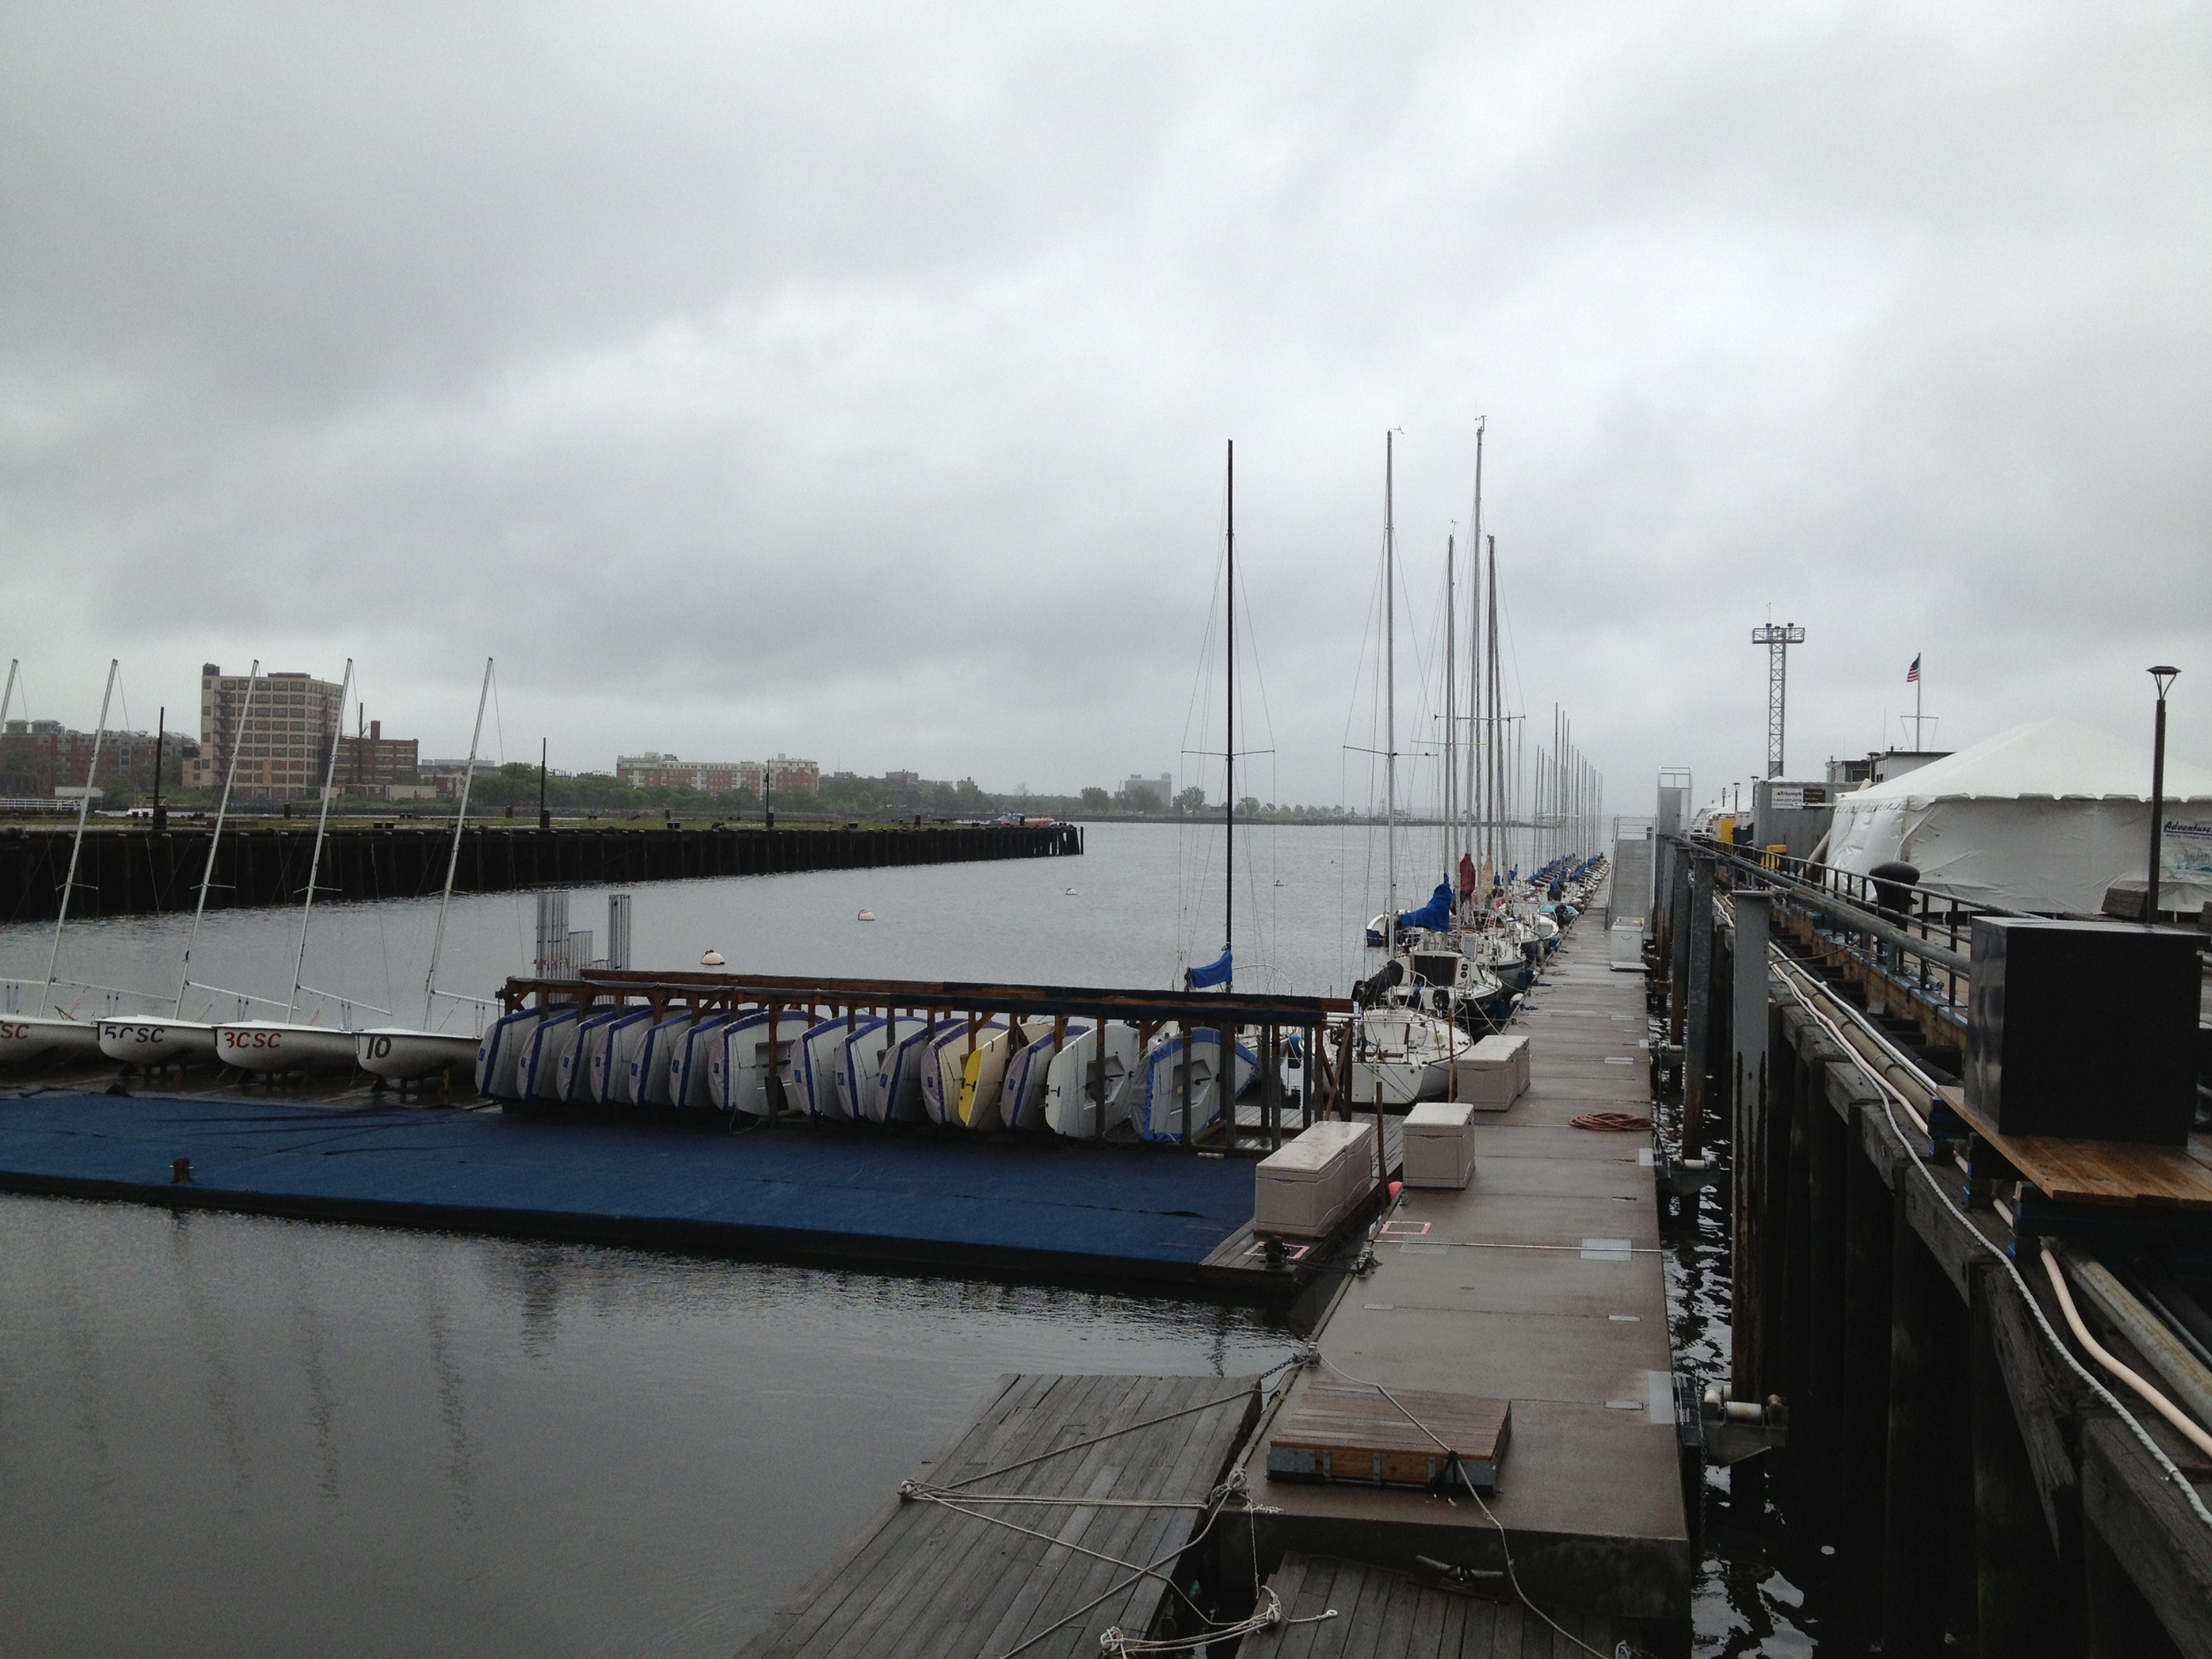 The courageous sailing dock and fleet.